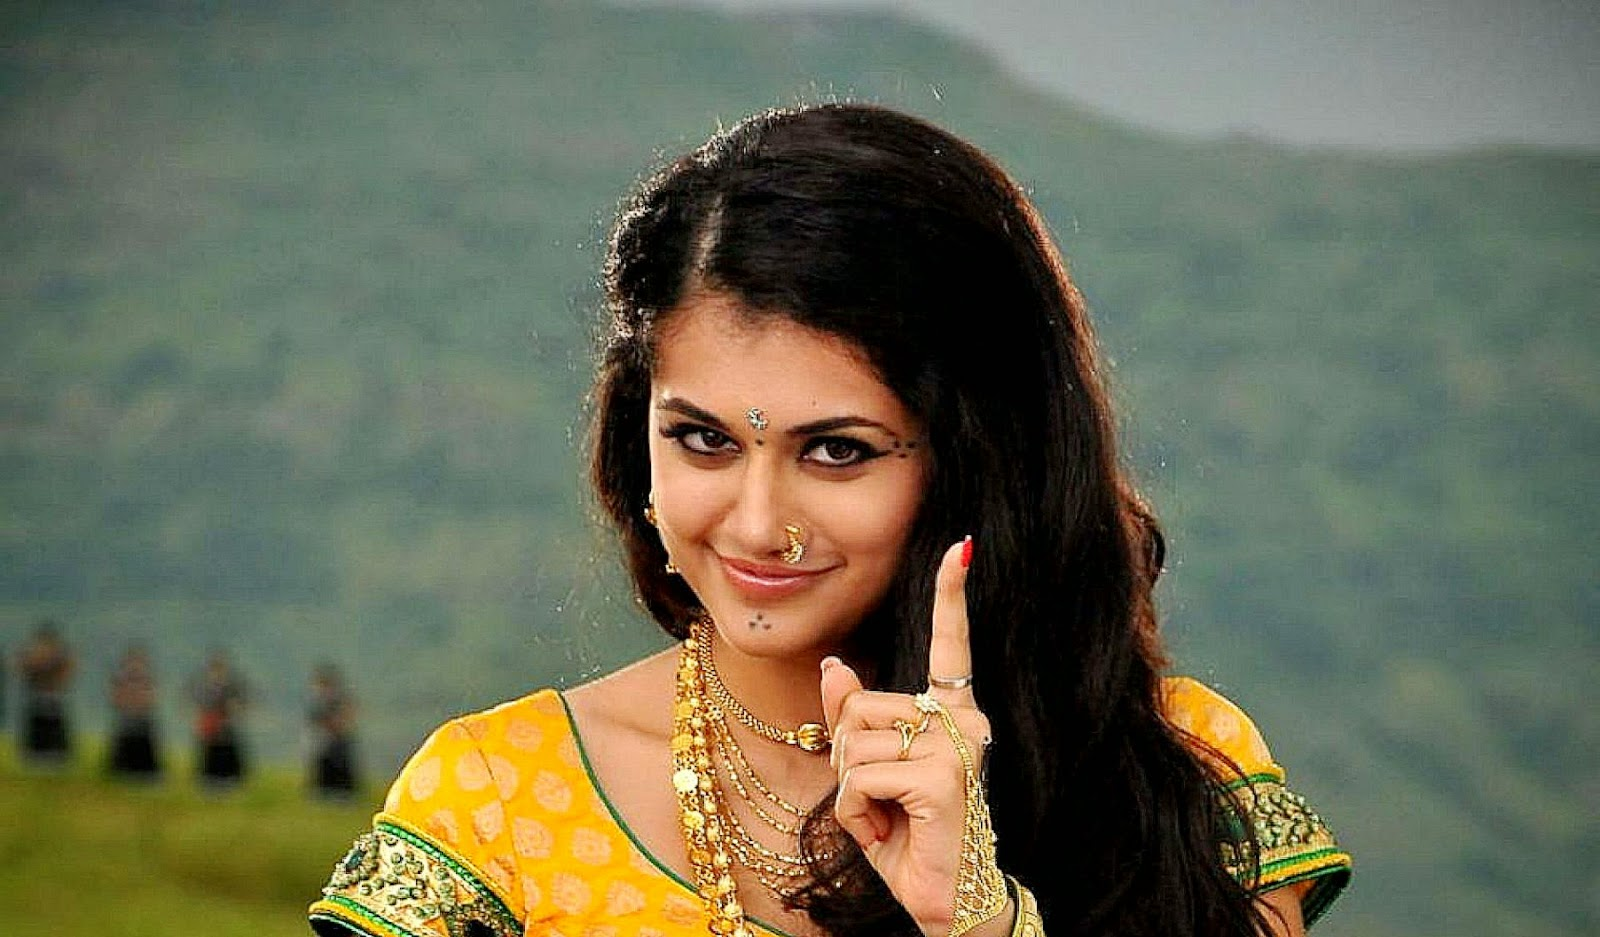 Hd Actress Wallpapers Tamil